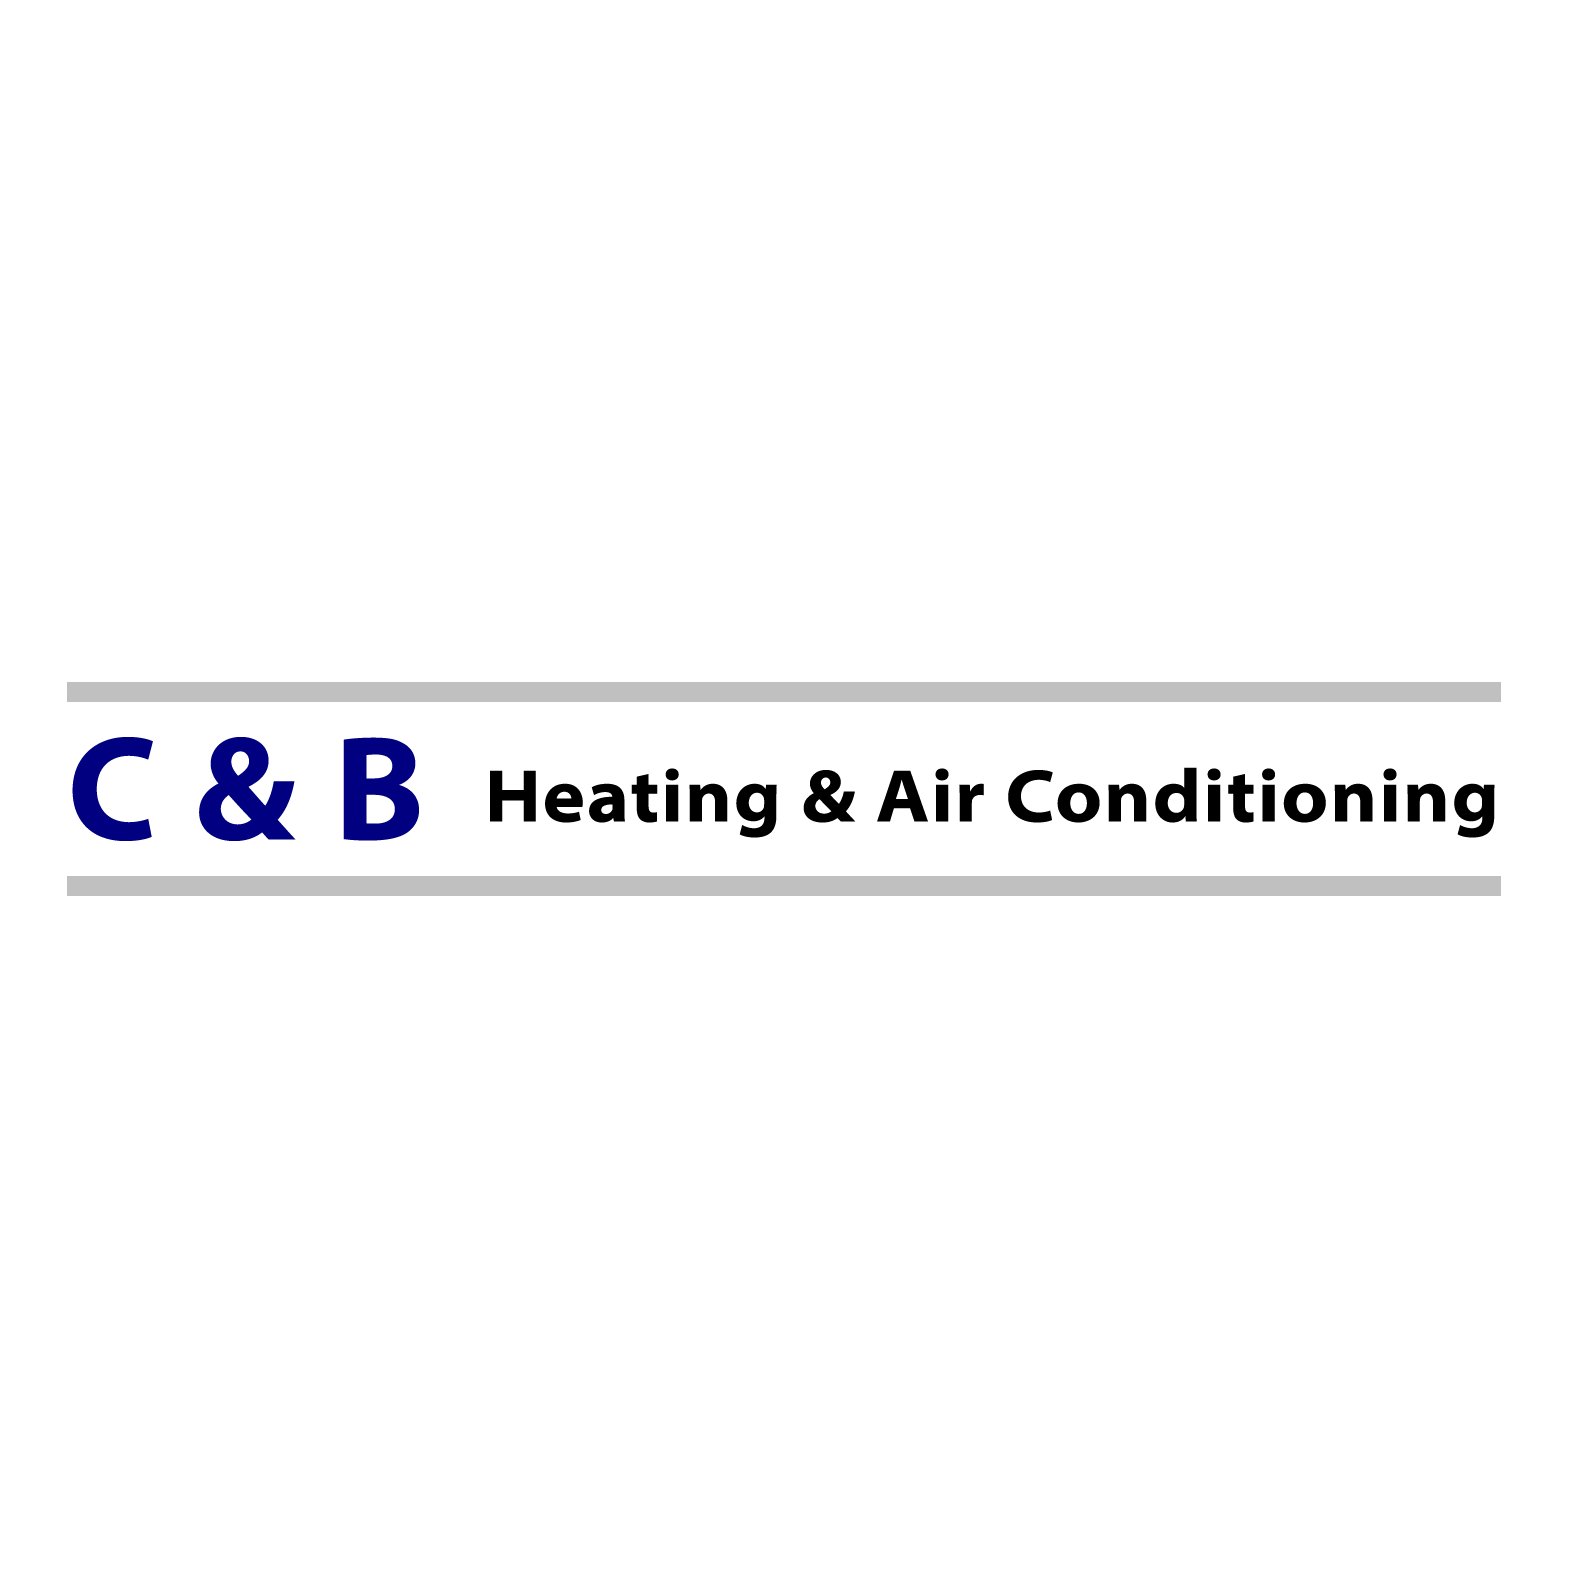 C & B Heating & Air Conditioning